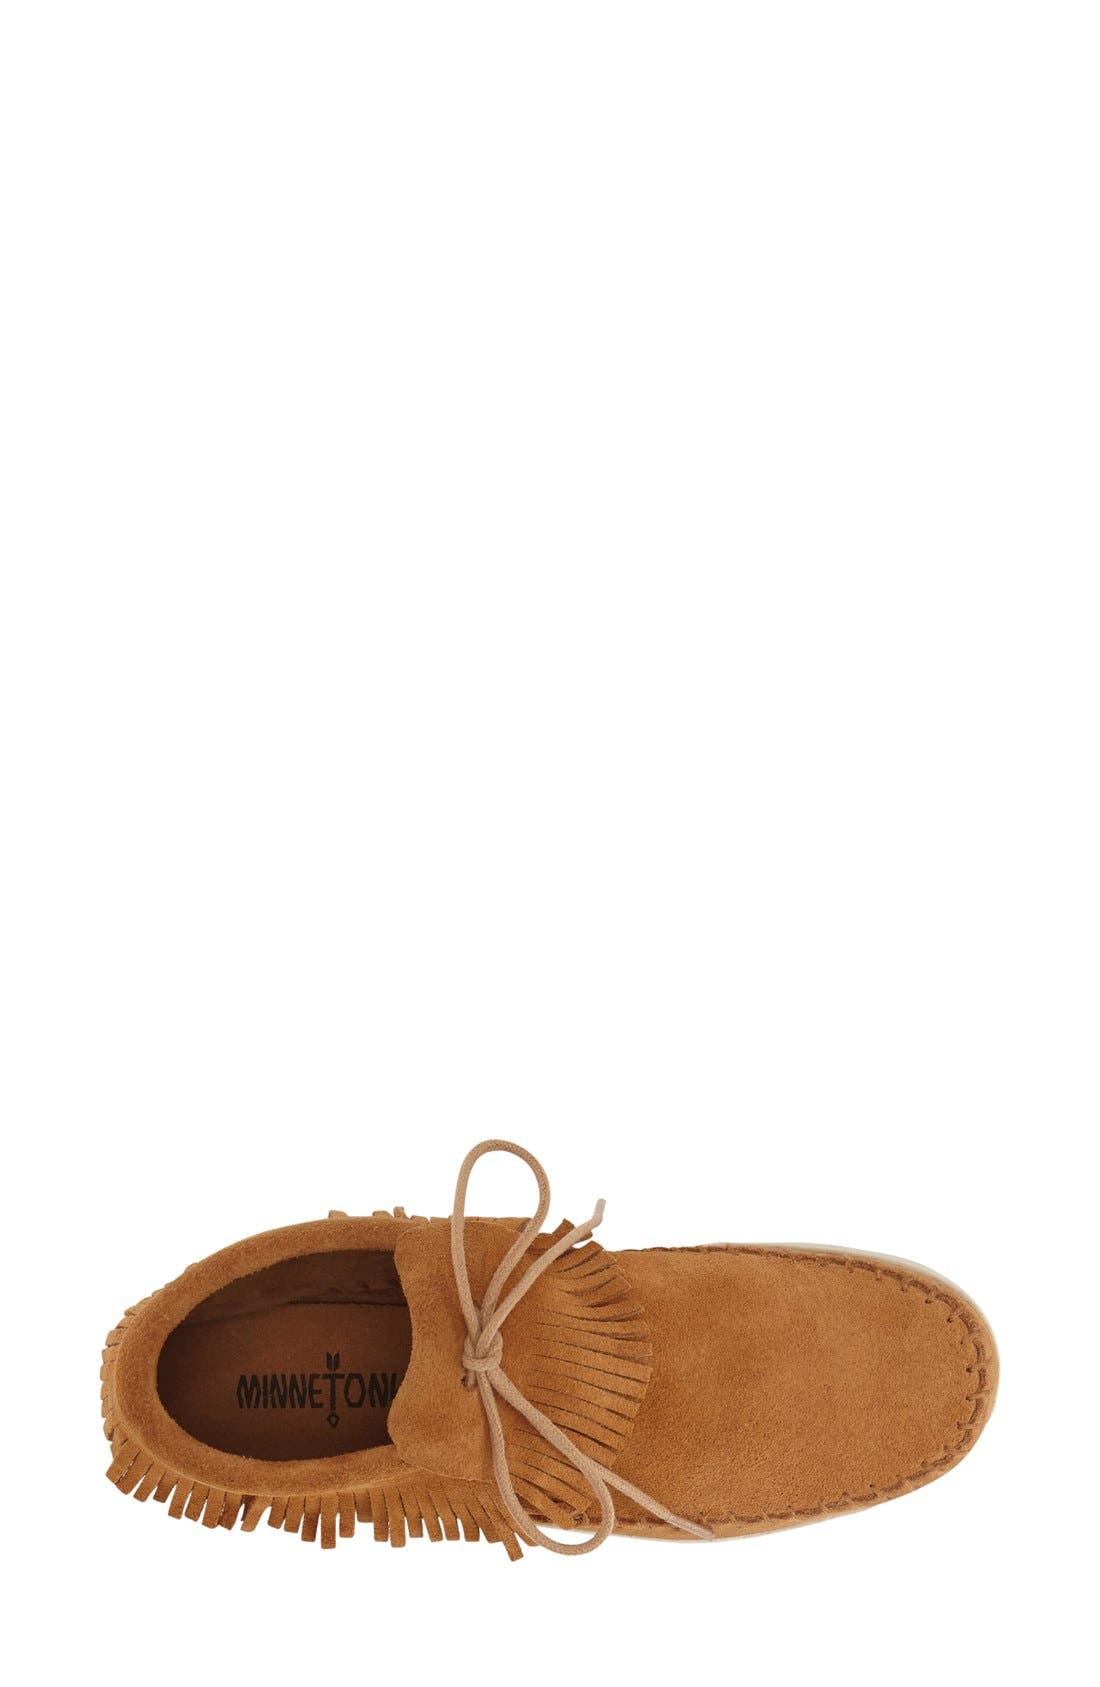 'Venice' Fringe Moccasin Bootie,                             Alternate thumbnail 3, color,                             Taupe Suede